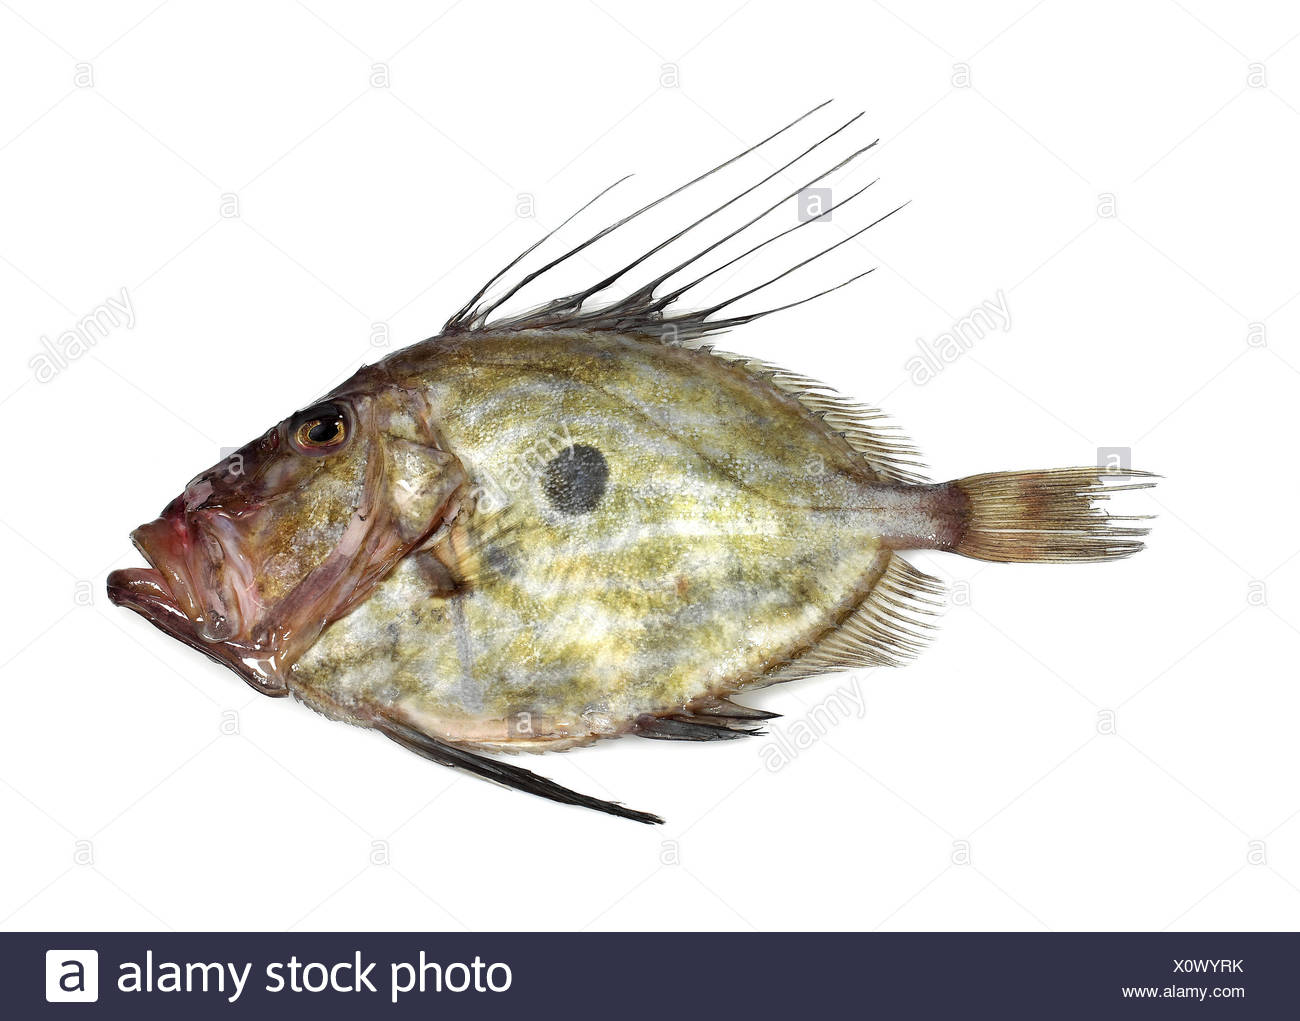 More freshly Peter's fish,John Dory,Zeus faber,background knows, - Stock Image